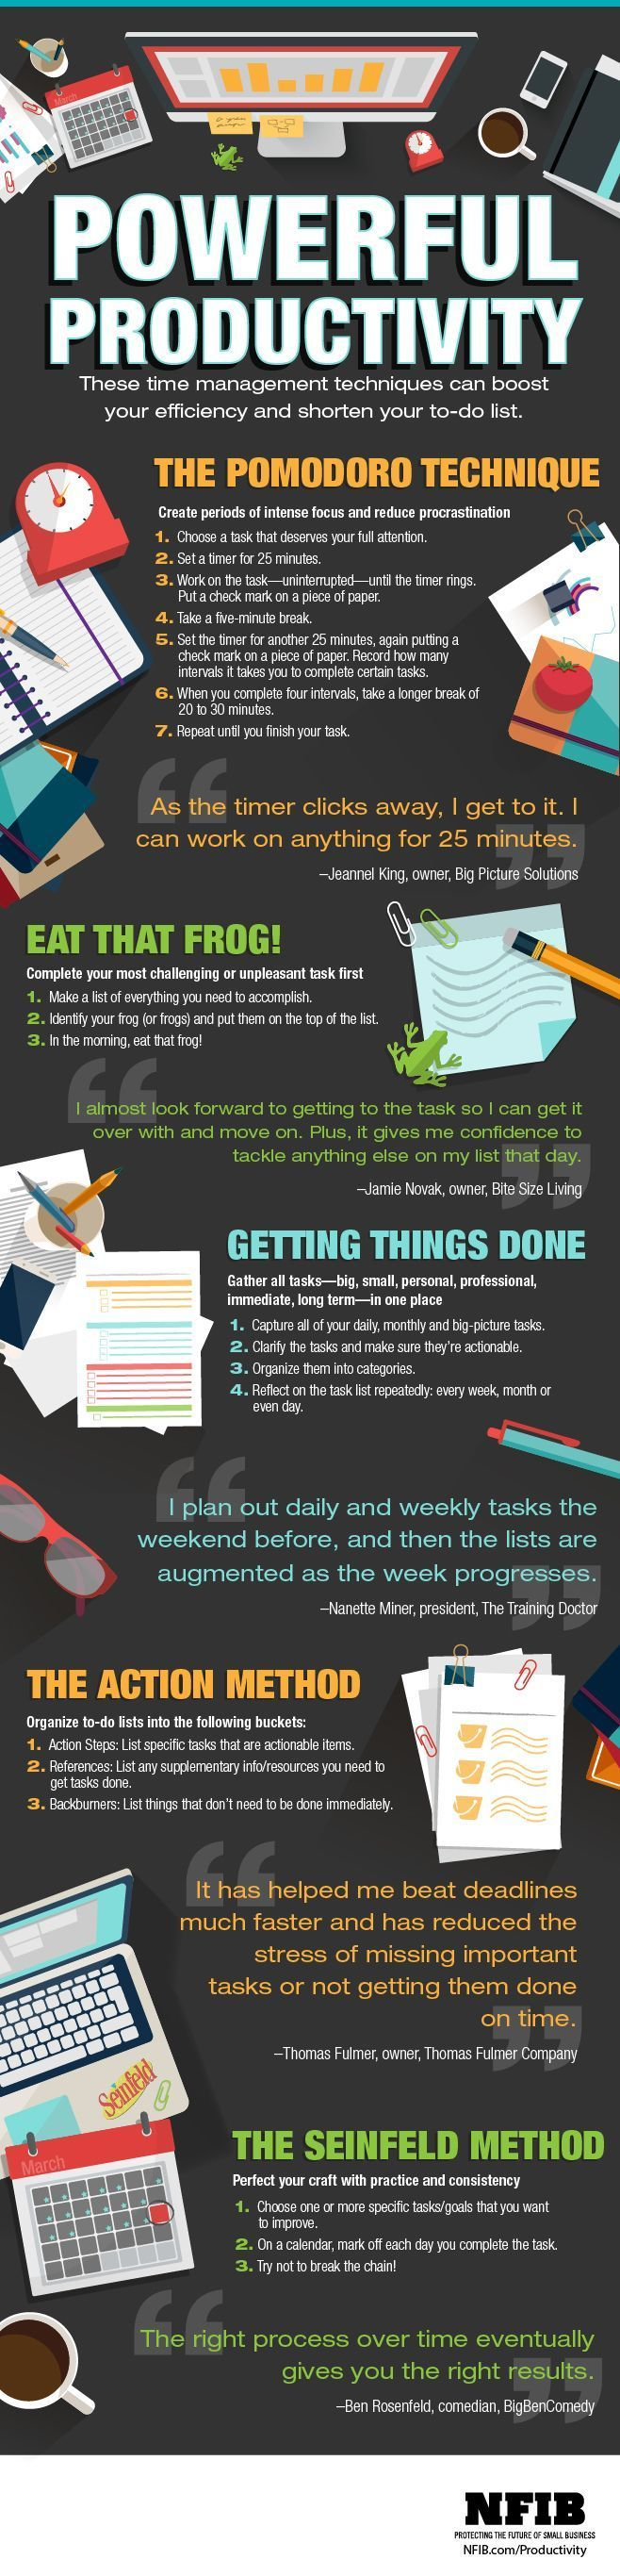 5 Ways to Be More Productive - 1) Pomodoro 2) Eat that frog. Hardest things first. 3) Getting Things Done... ""